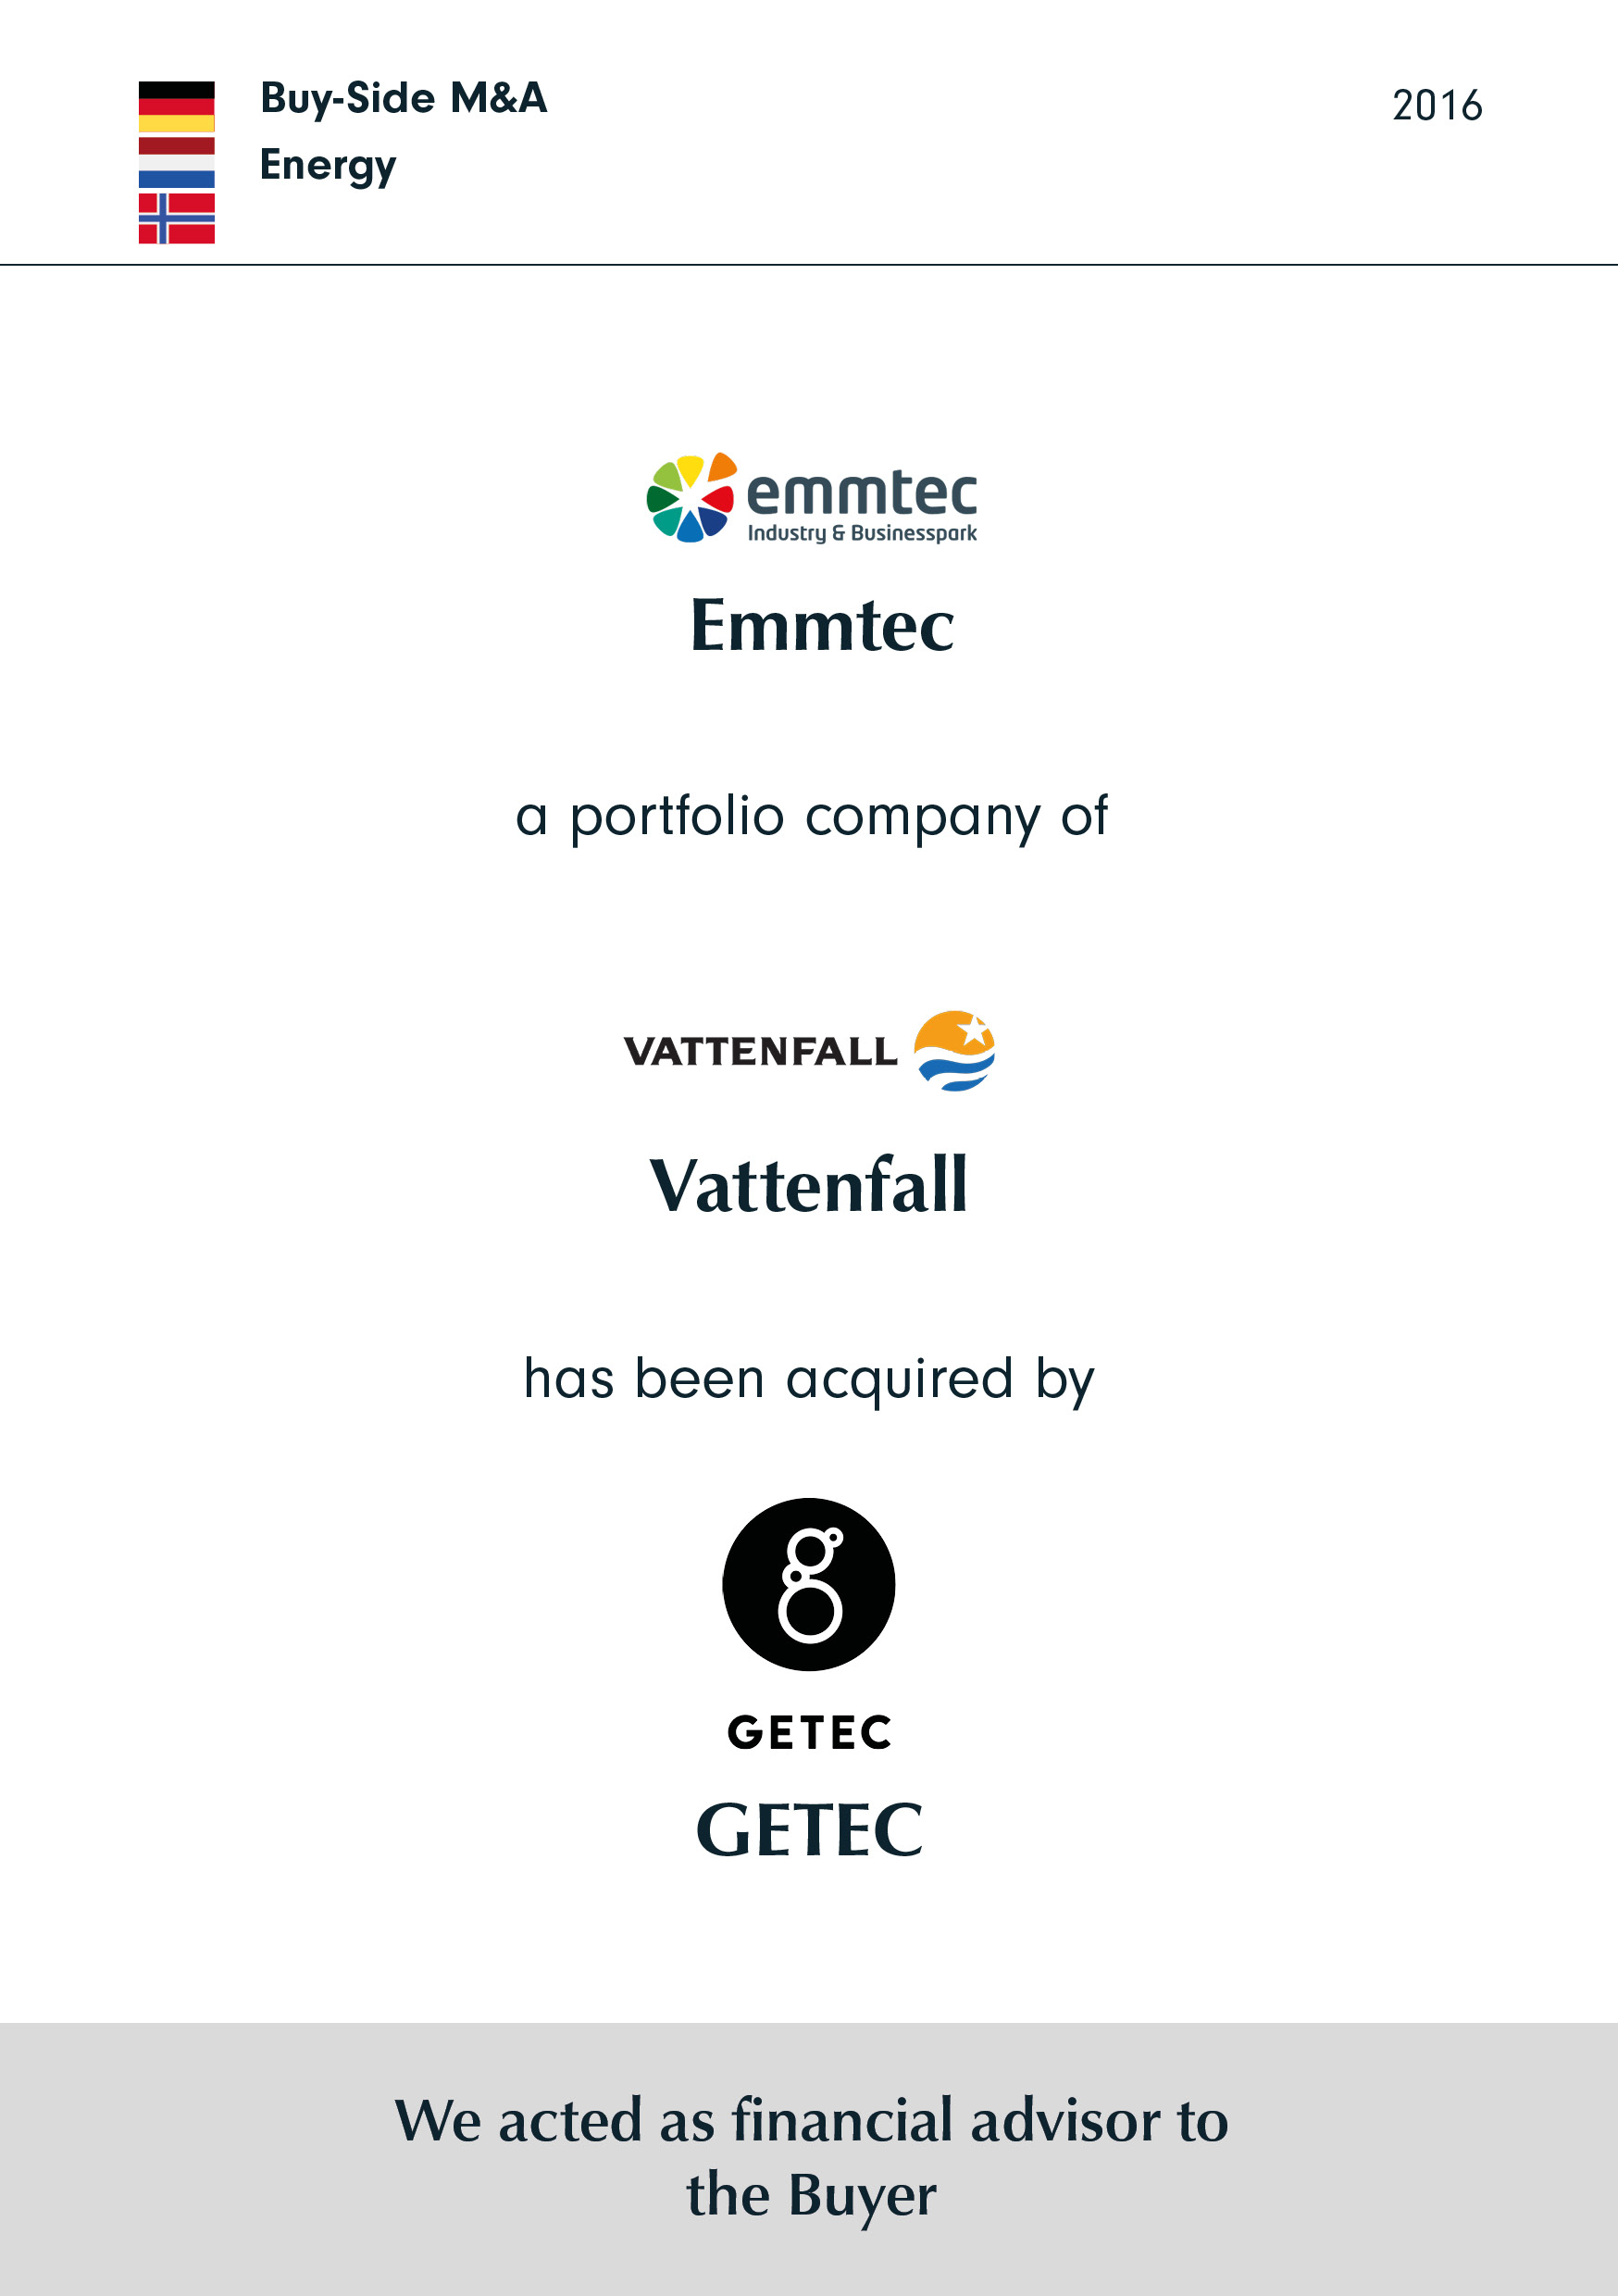 emmtec | a portfolio company of | VATTENFALL | has been acquired by | GETEC